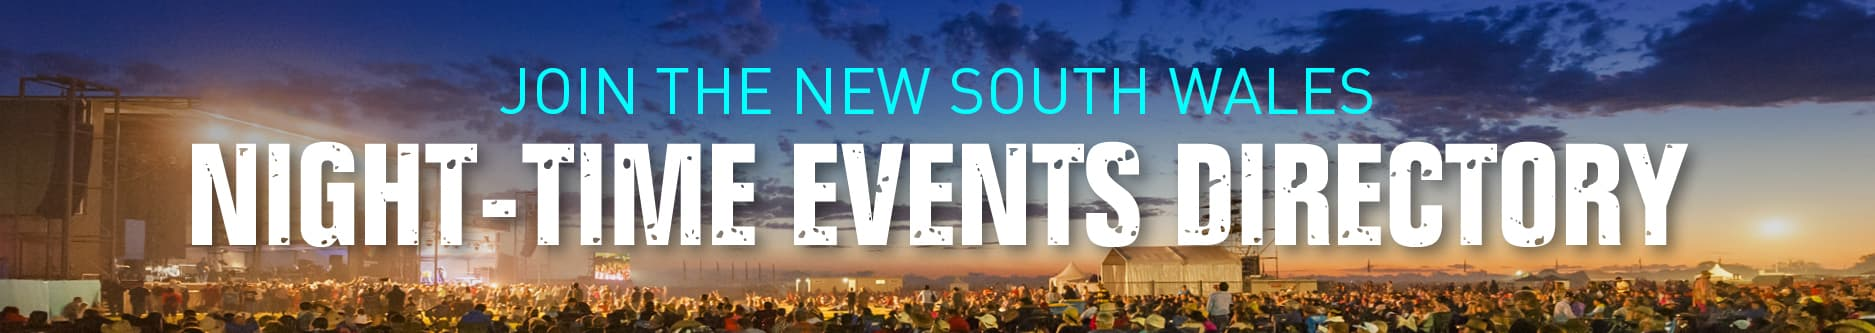 NSW night events